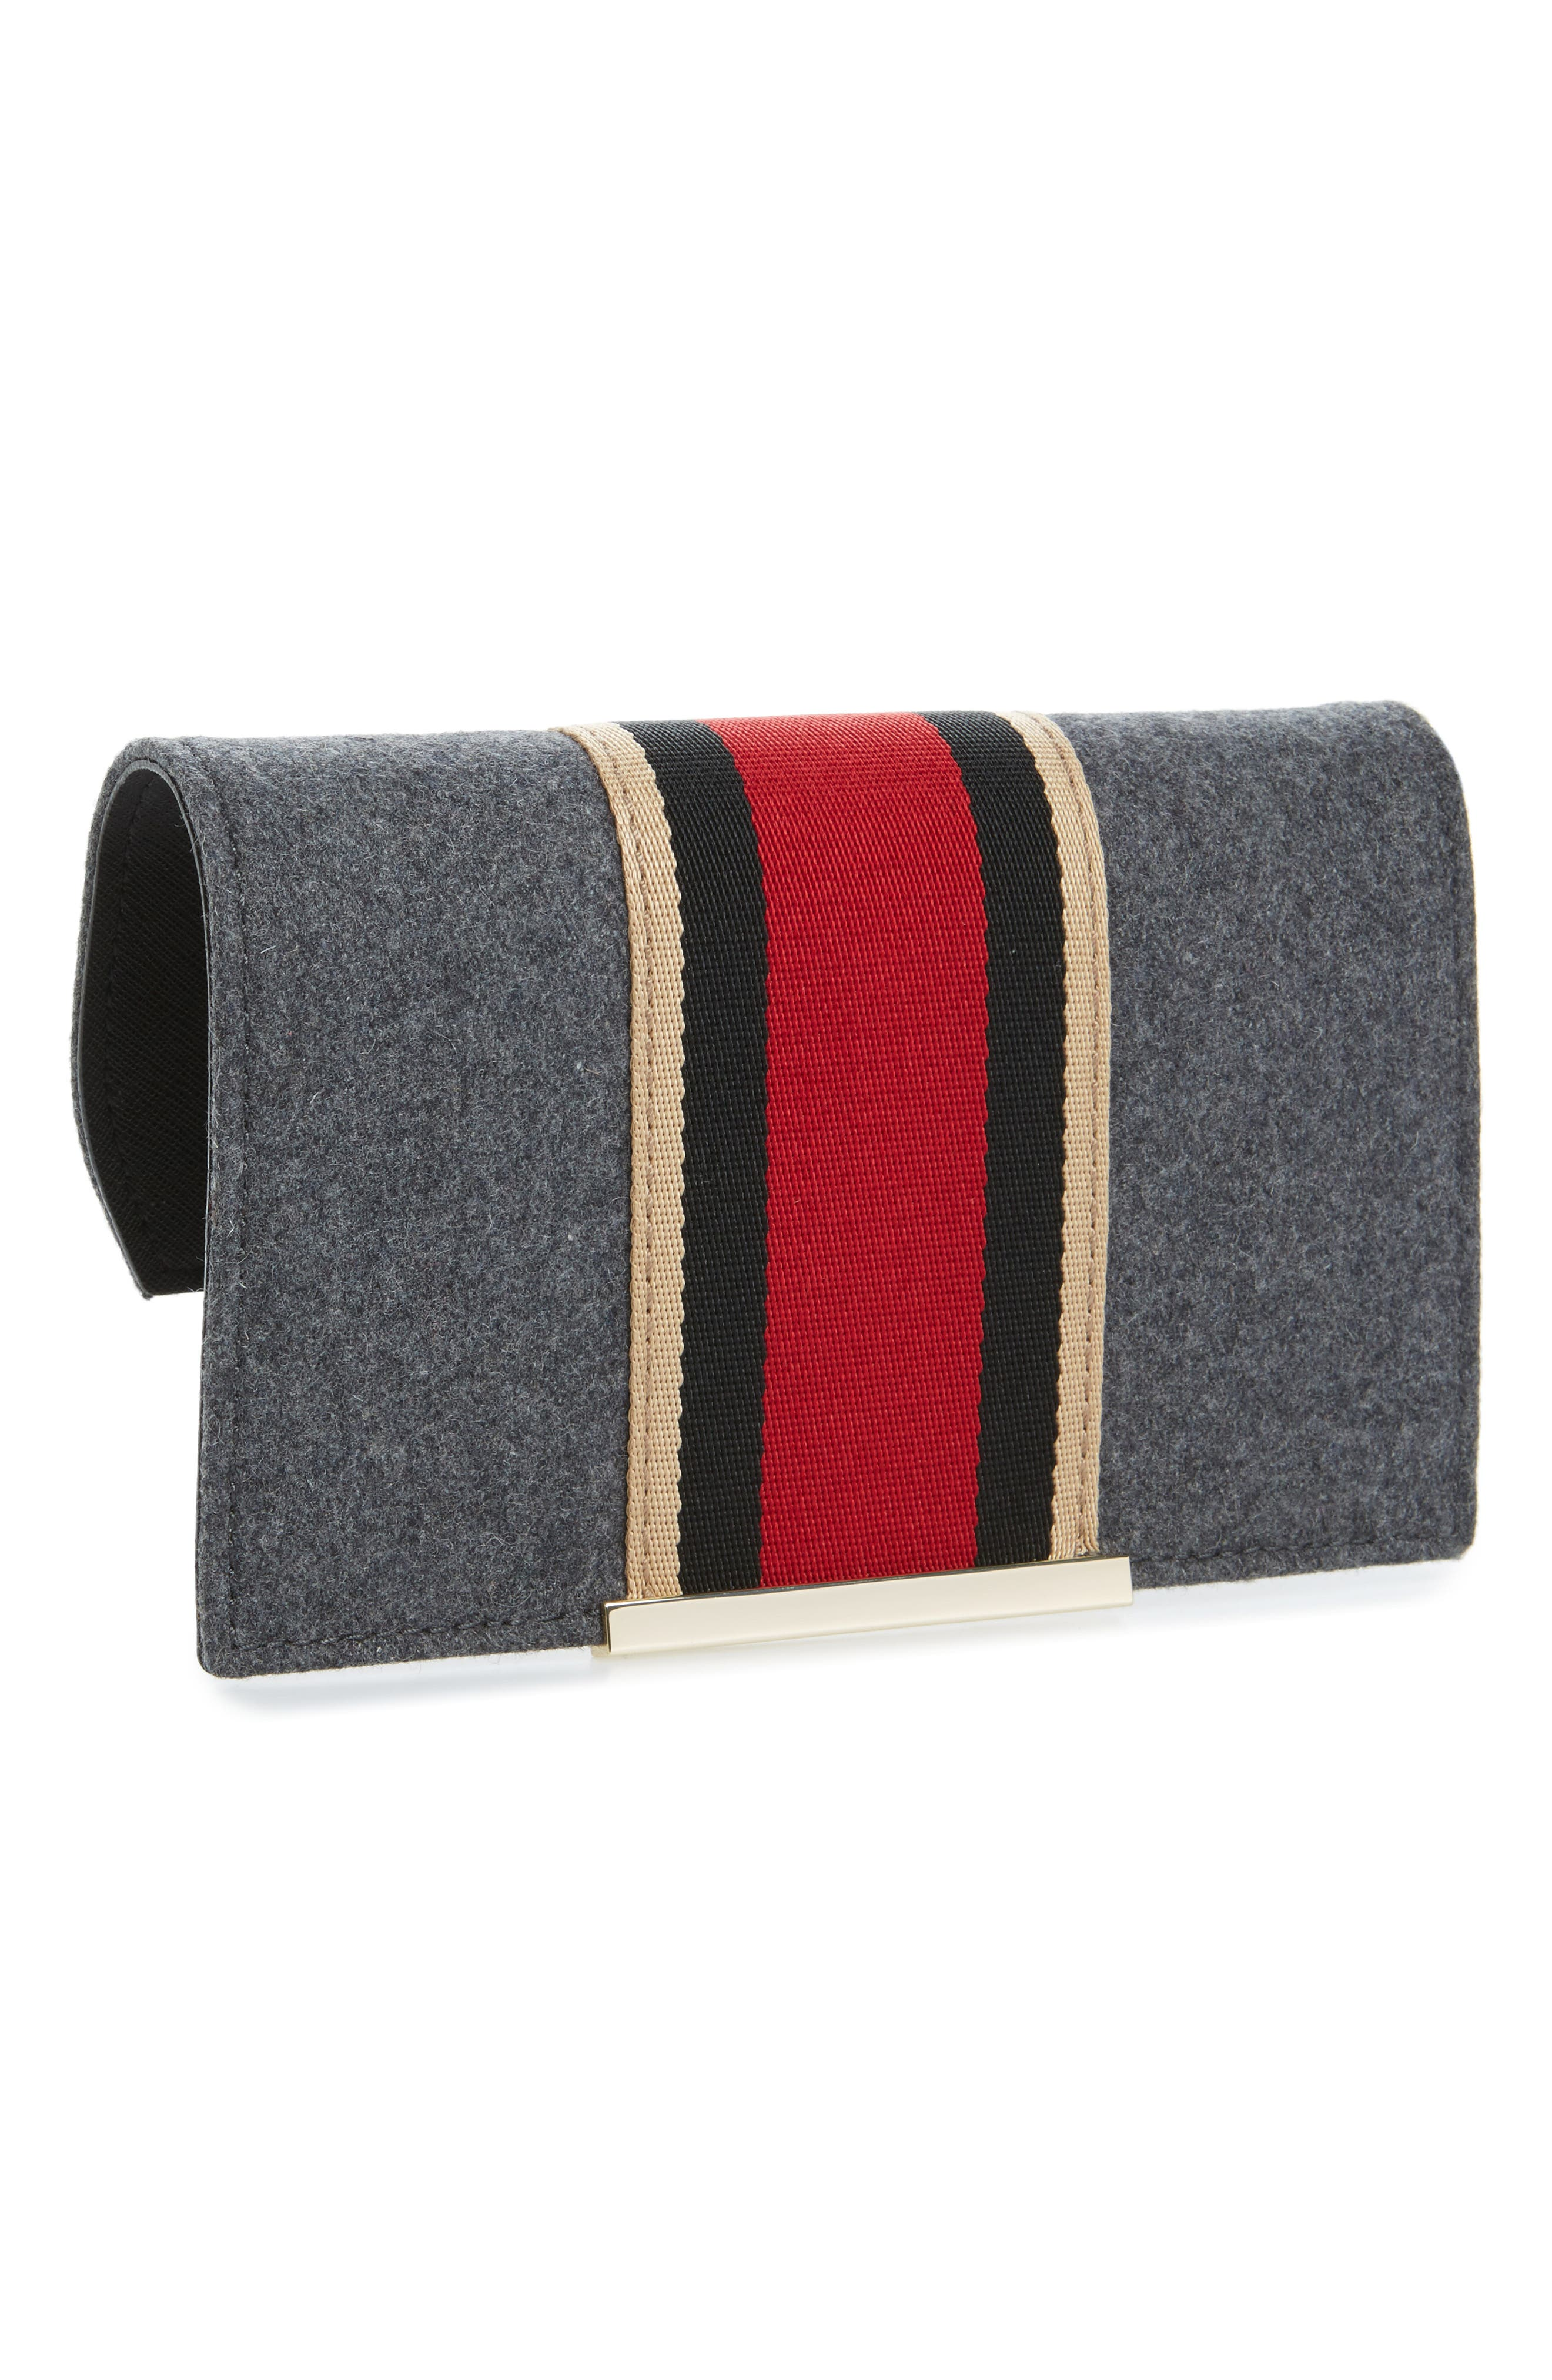 make it mine flannel stripe snap-on accent flap,                         Main,                         color, Charcoal